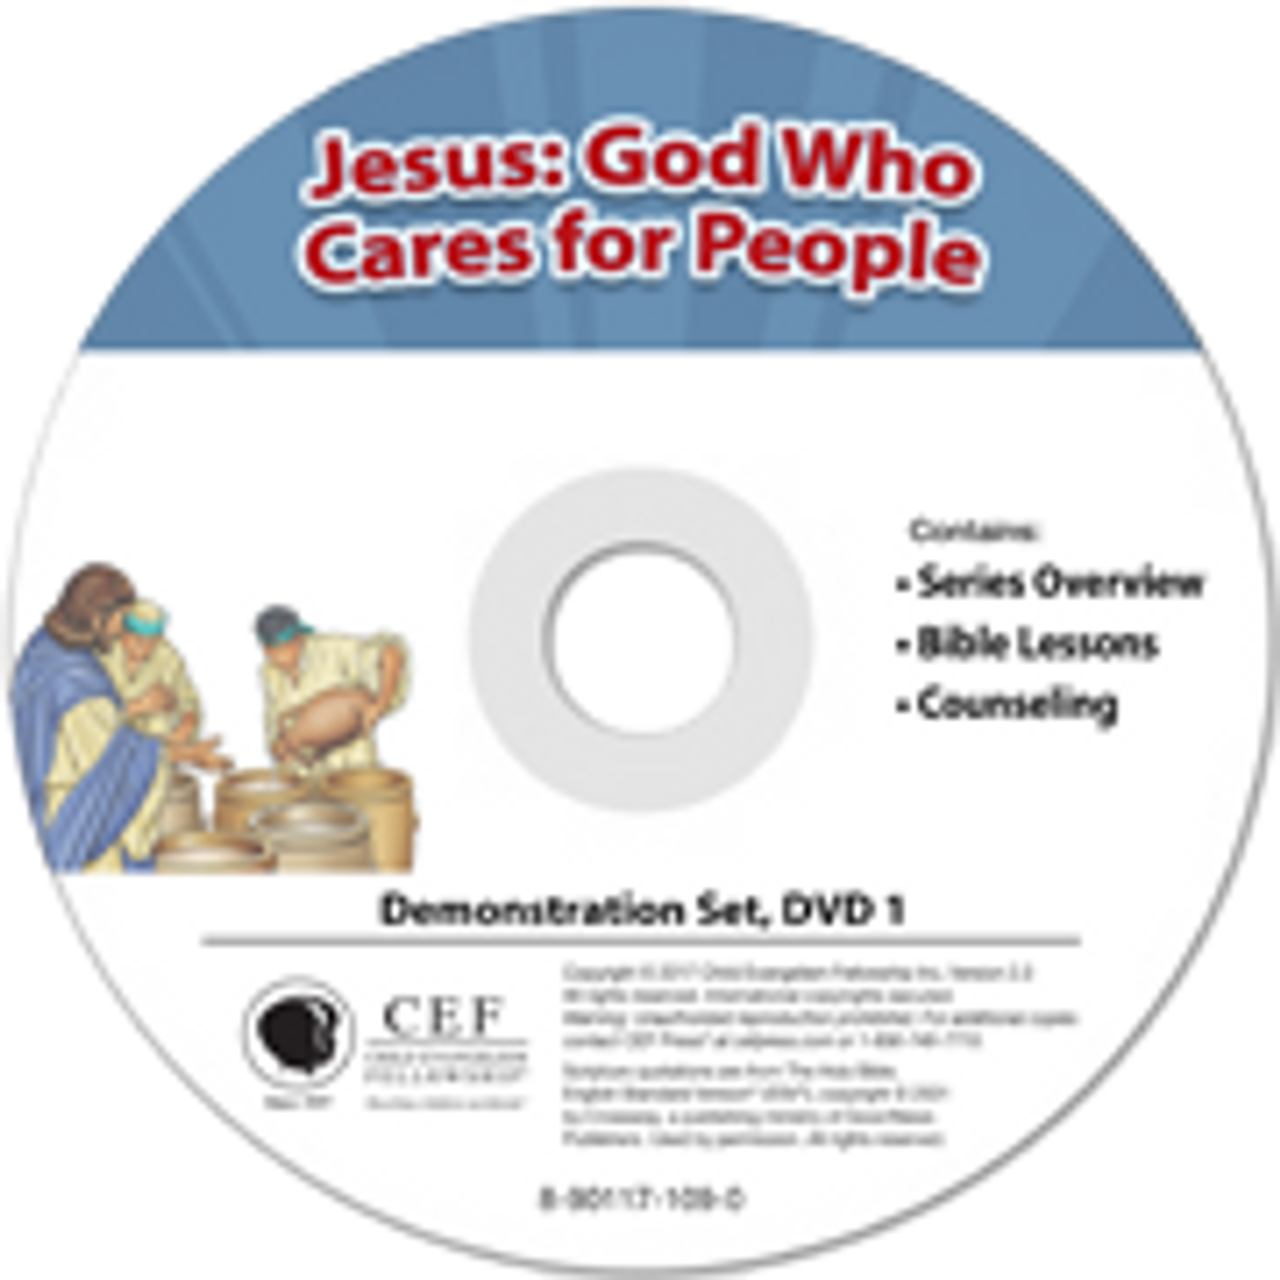 Jesus: God who cares for people 2017 (demo)